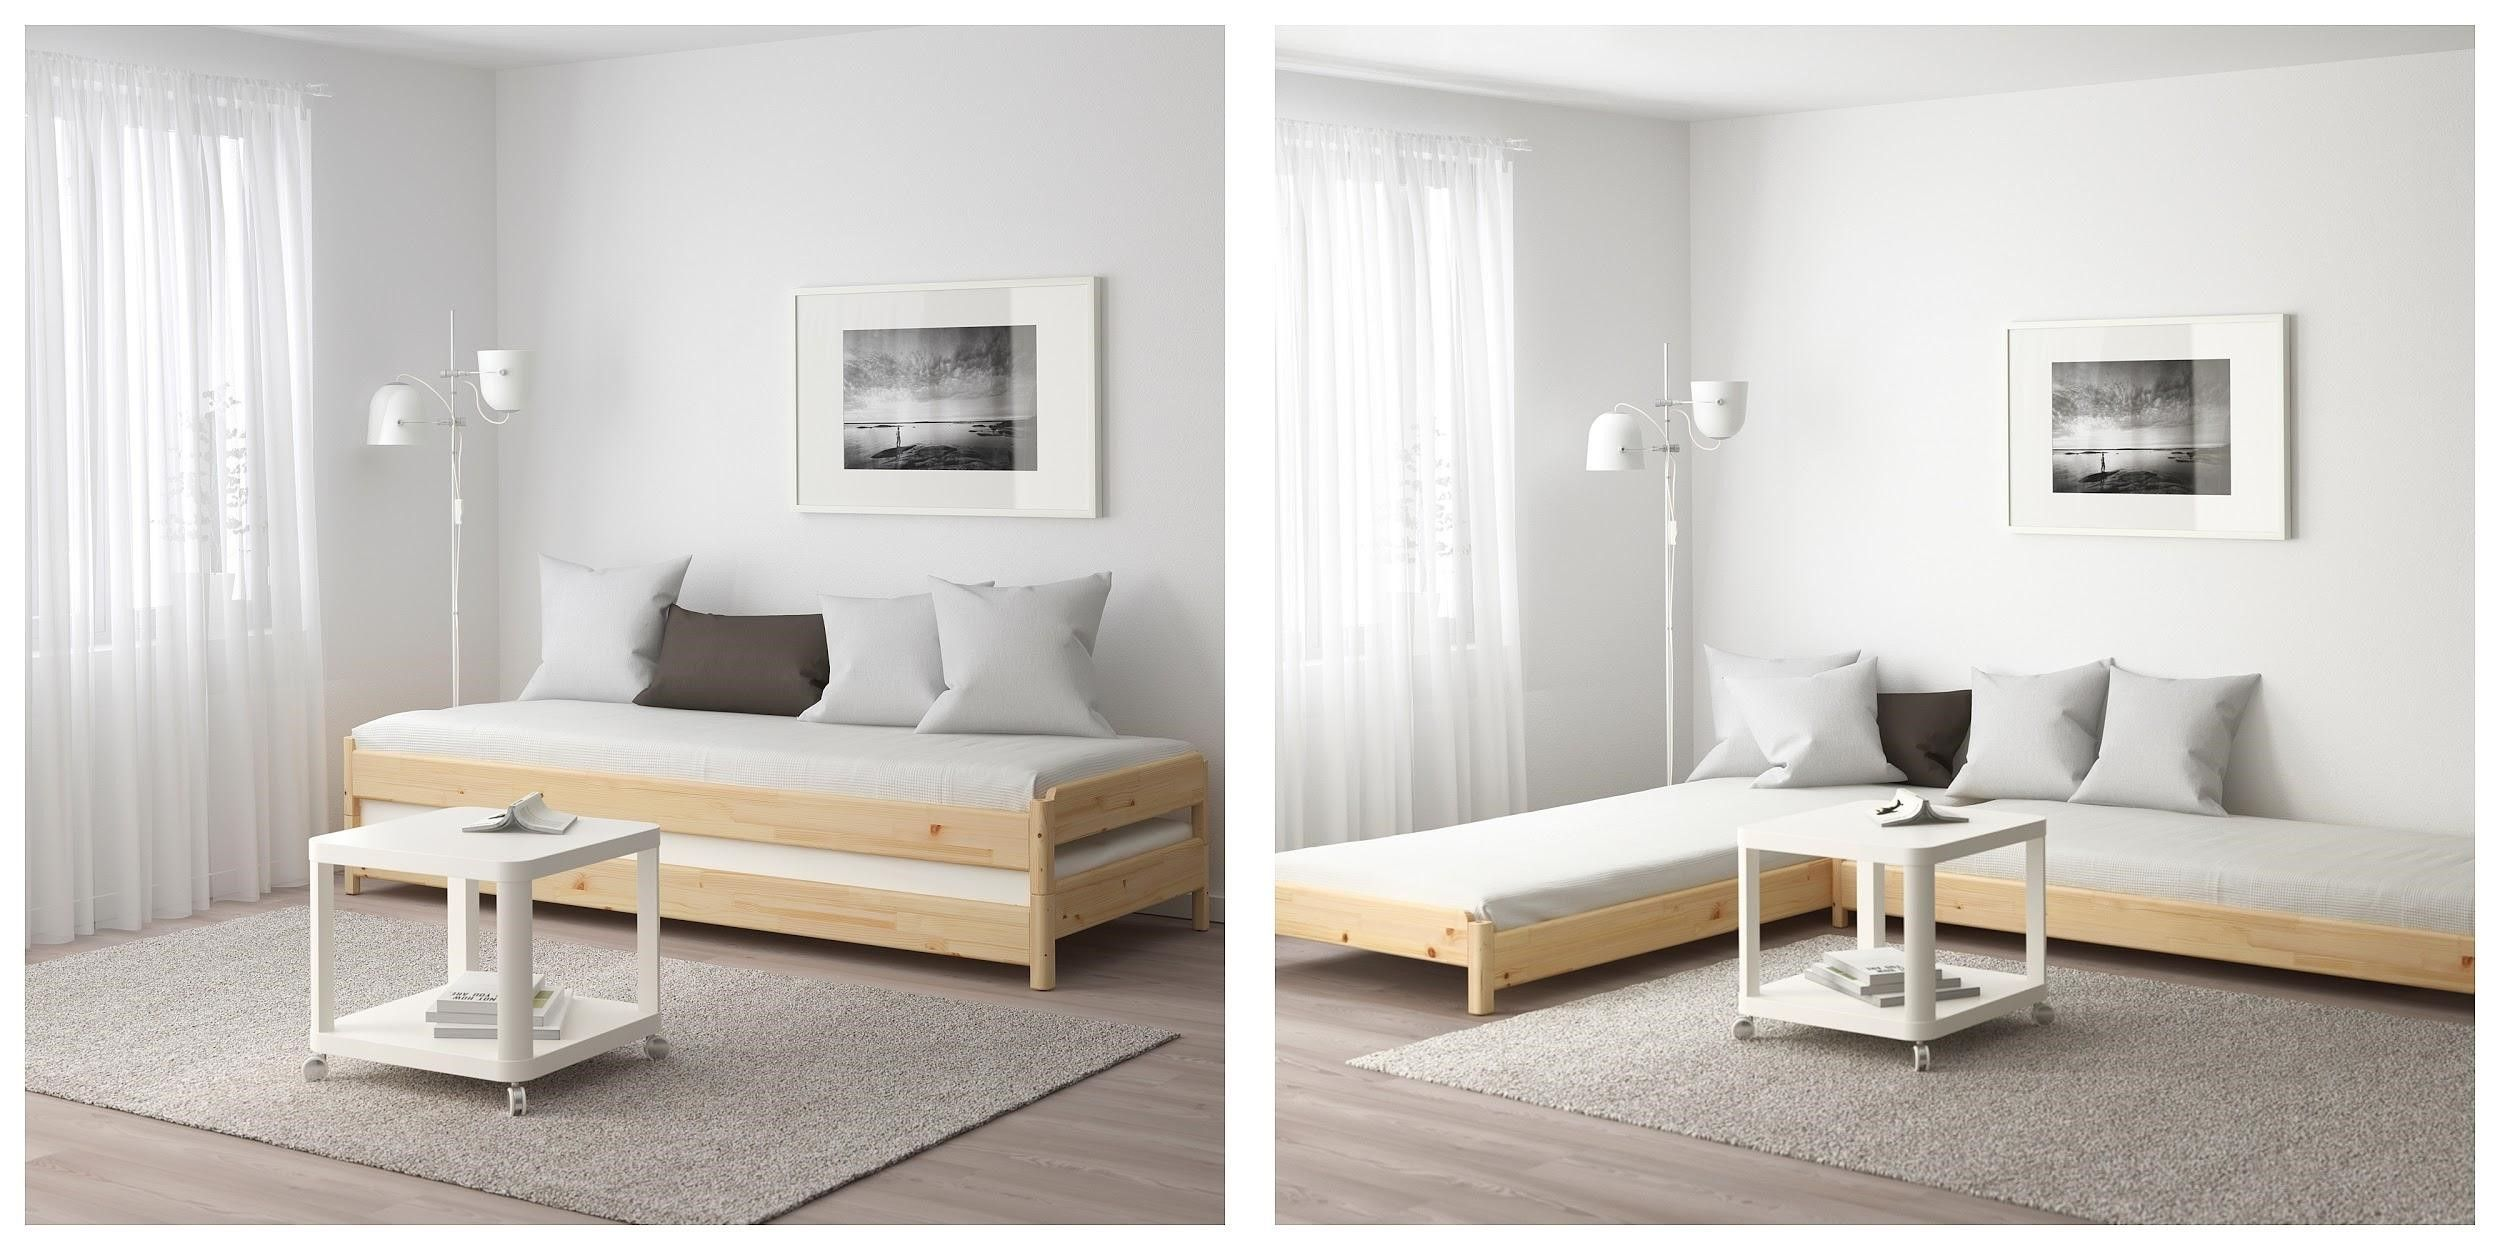 How to Make a Couch from a Twin Mattress Guide from